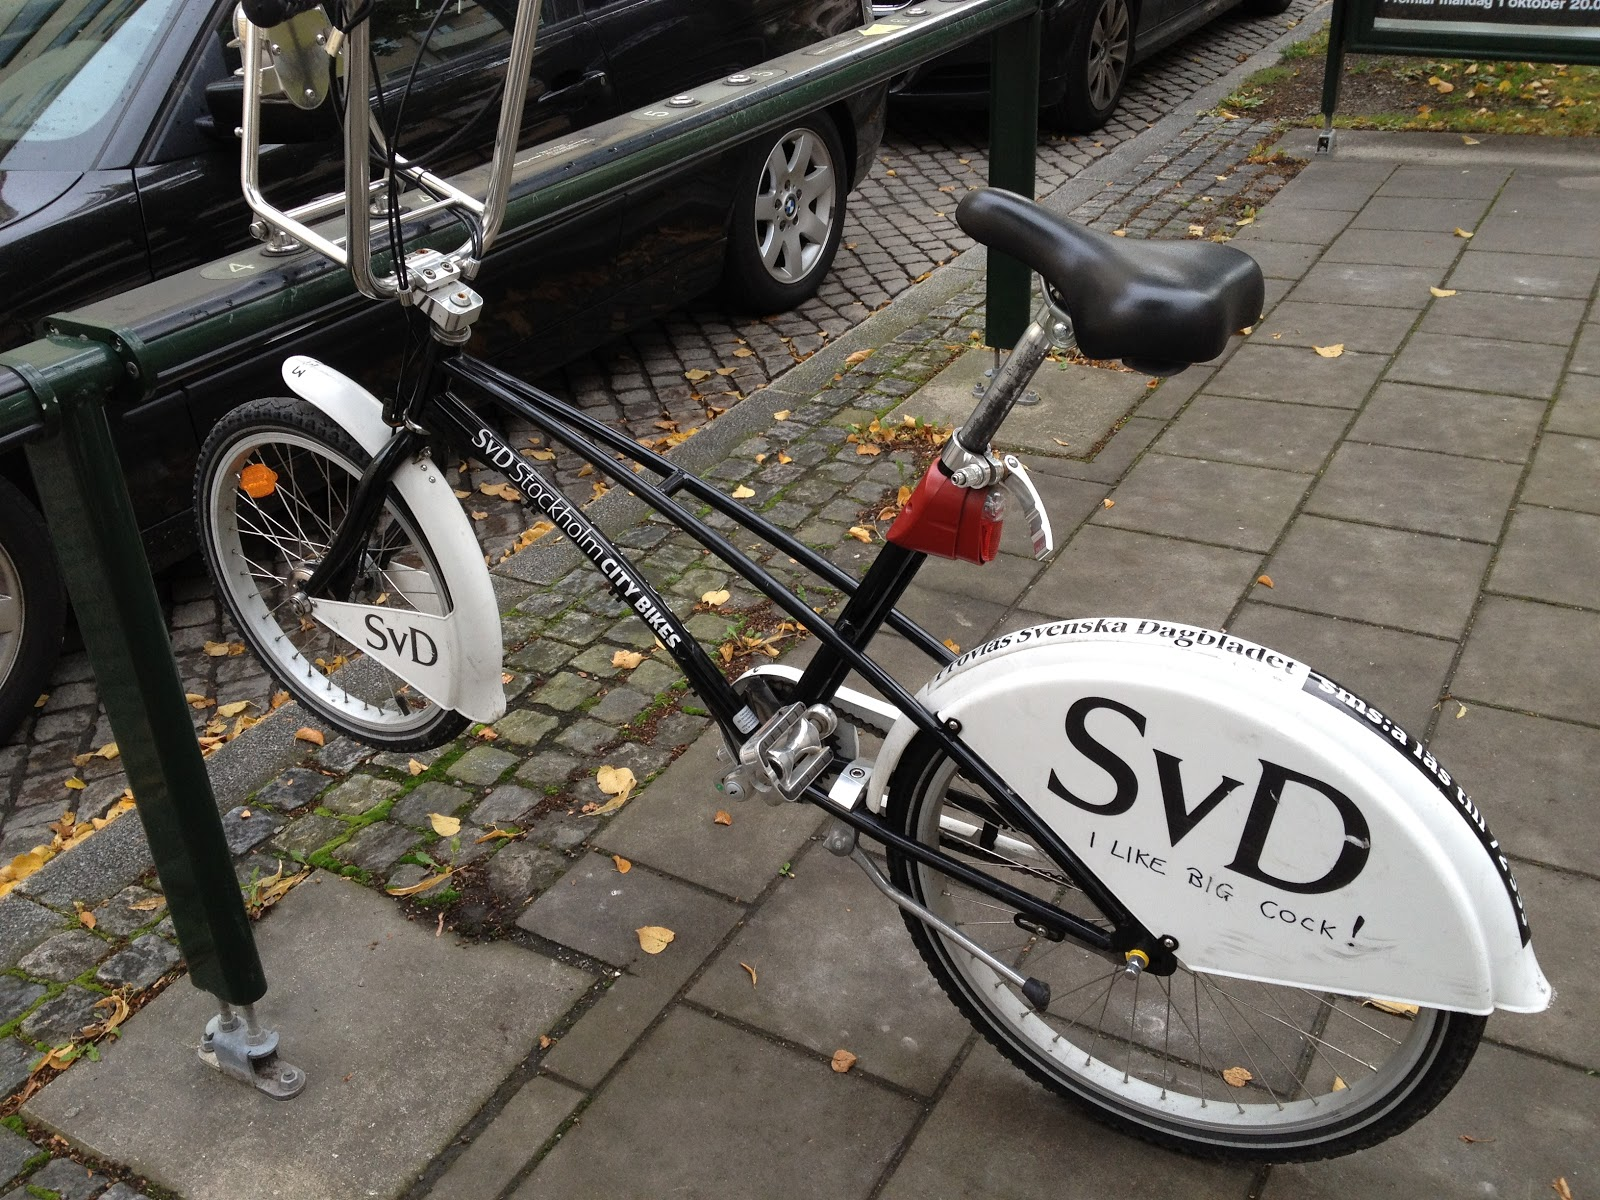 bike has 3 speed internal hub, coaster brakes, lever brake, kickstand, front and rear fenders, front basket, adjustable seat post, and front and rear lights